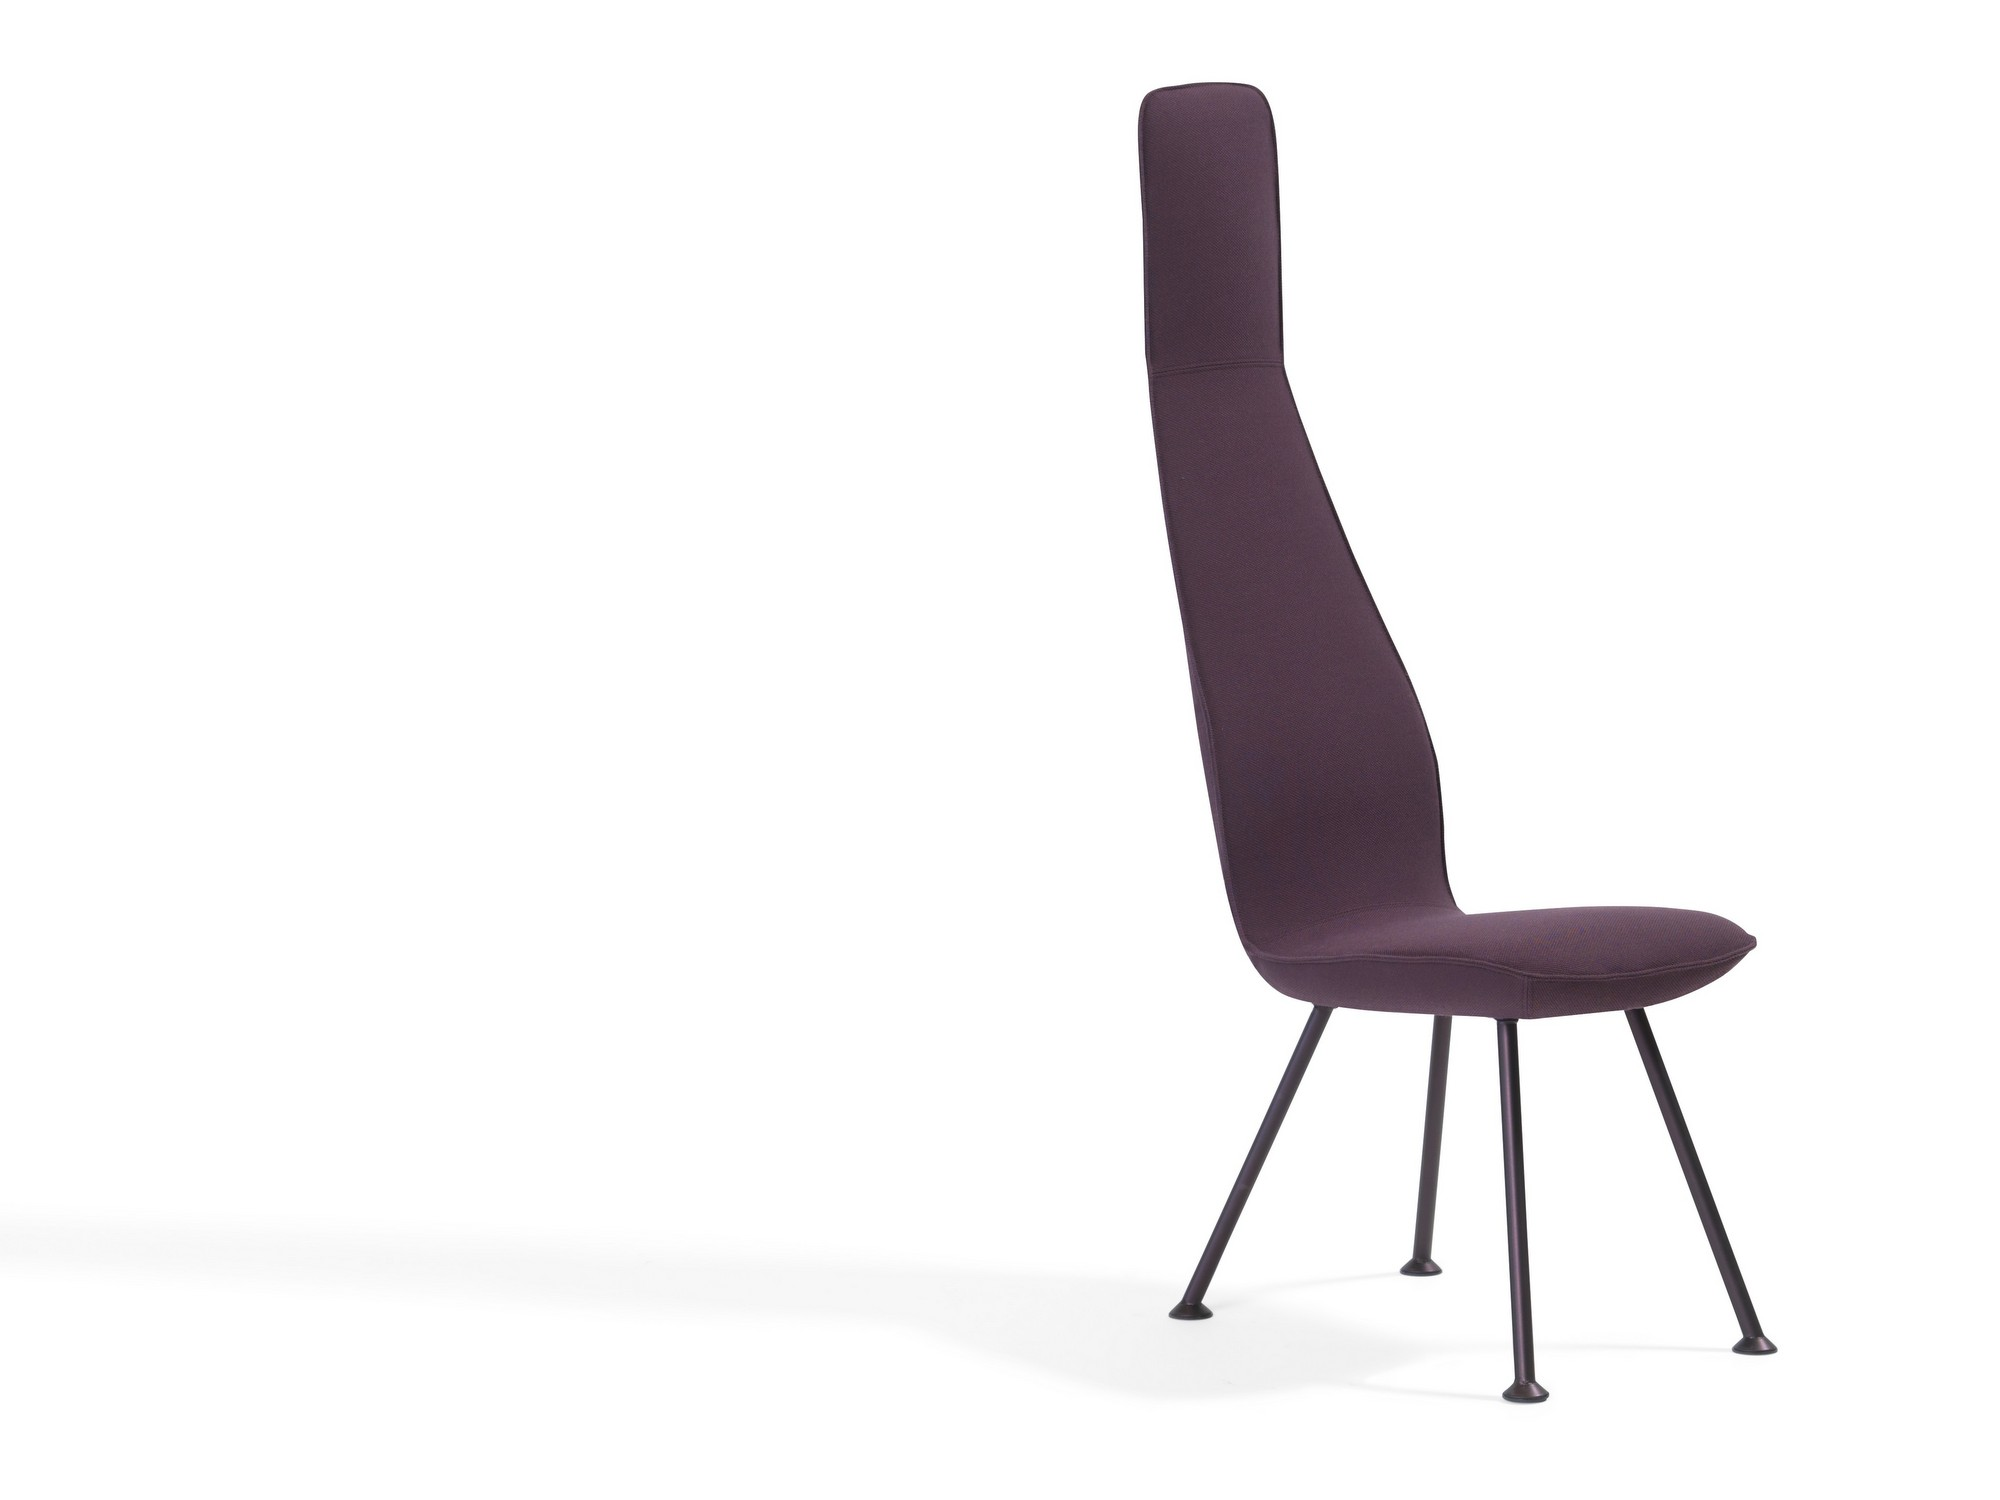 Poppe Lounge Chair by Blå Station